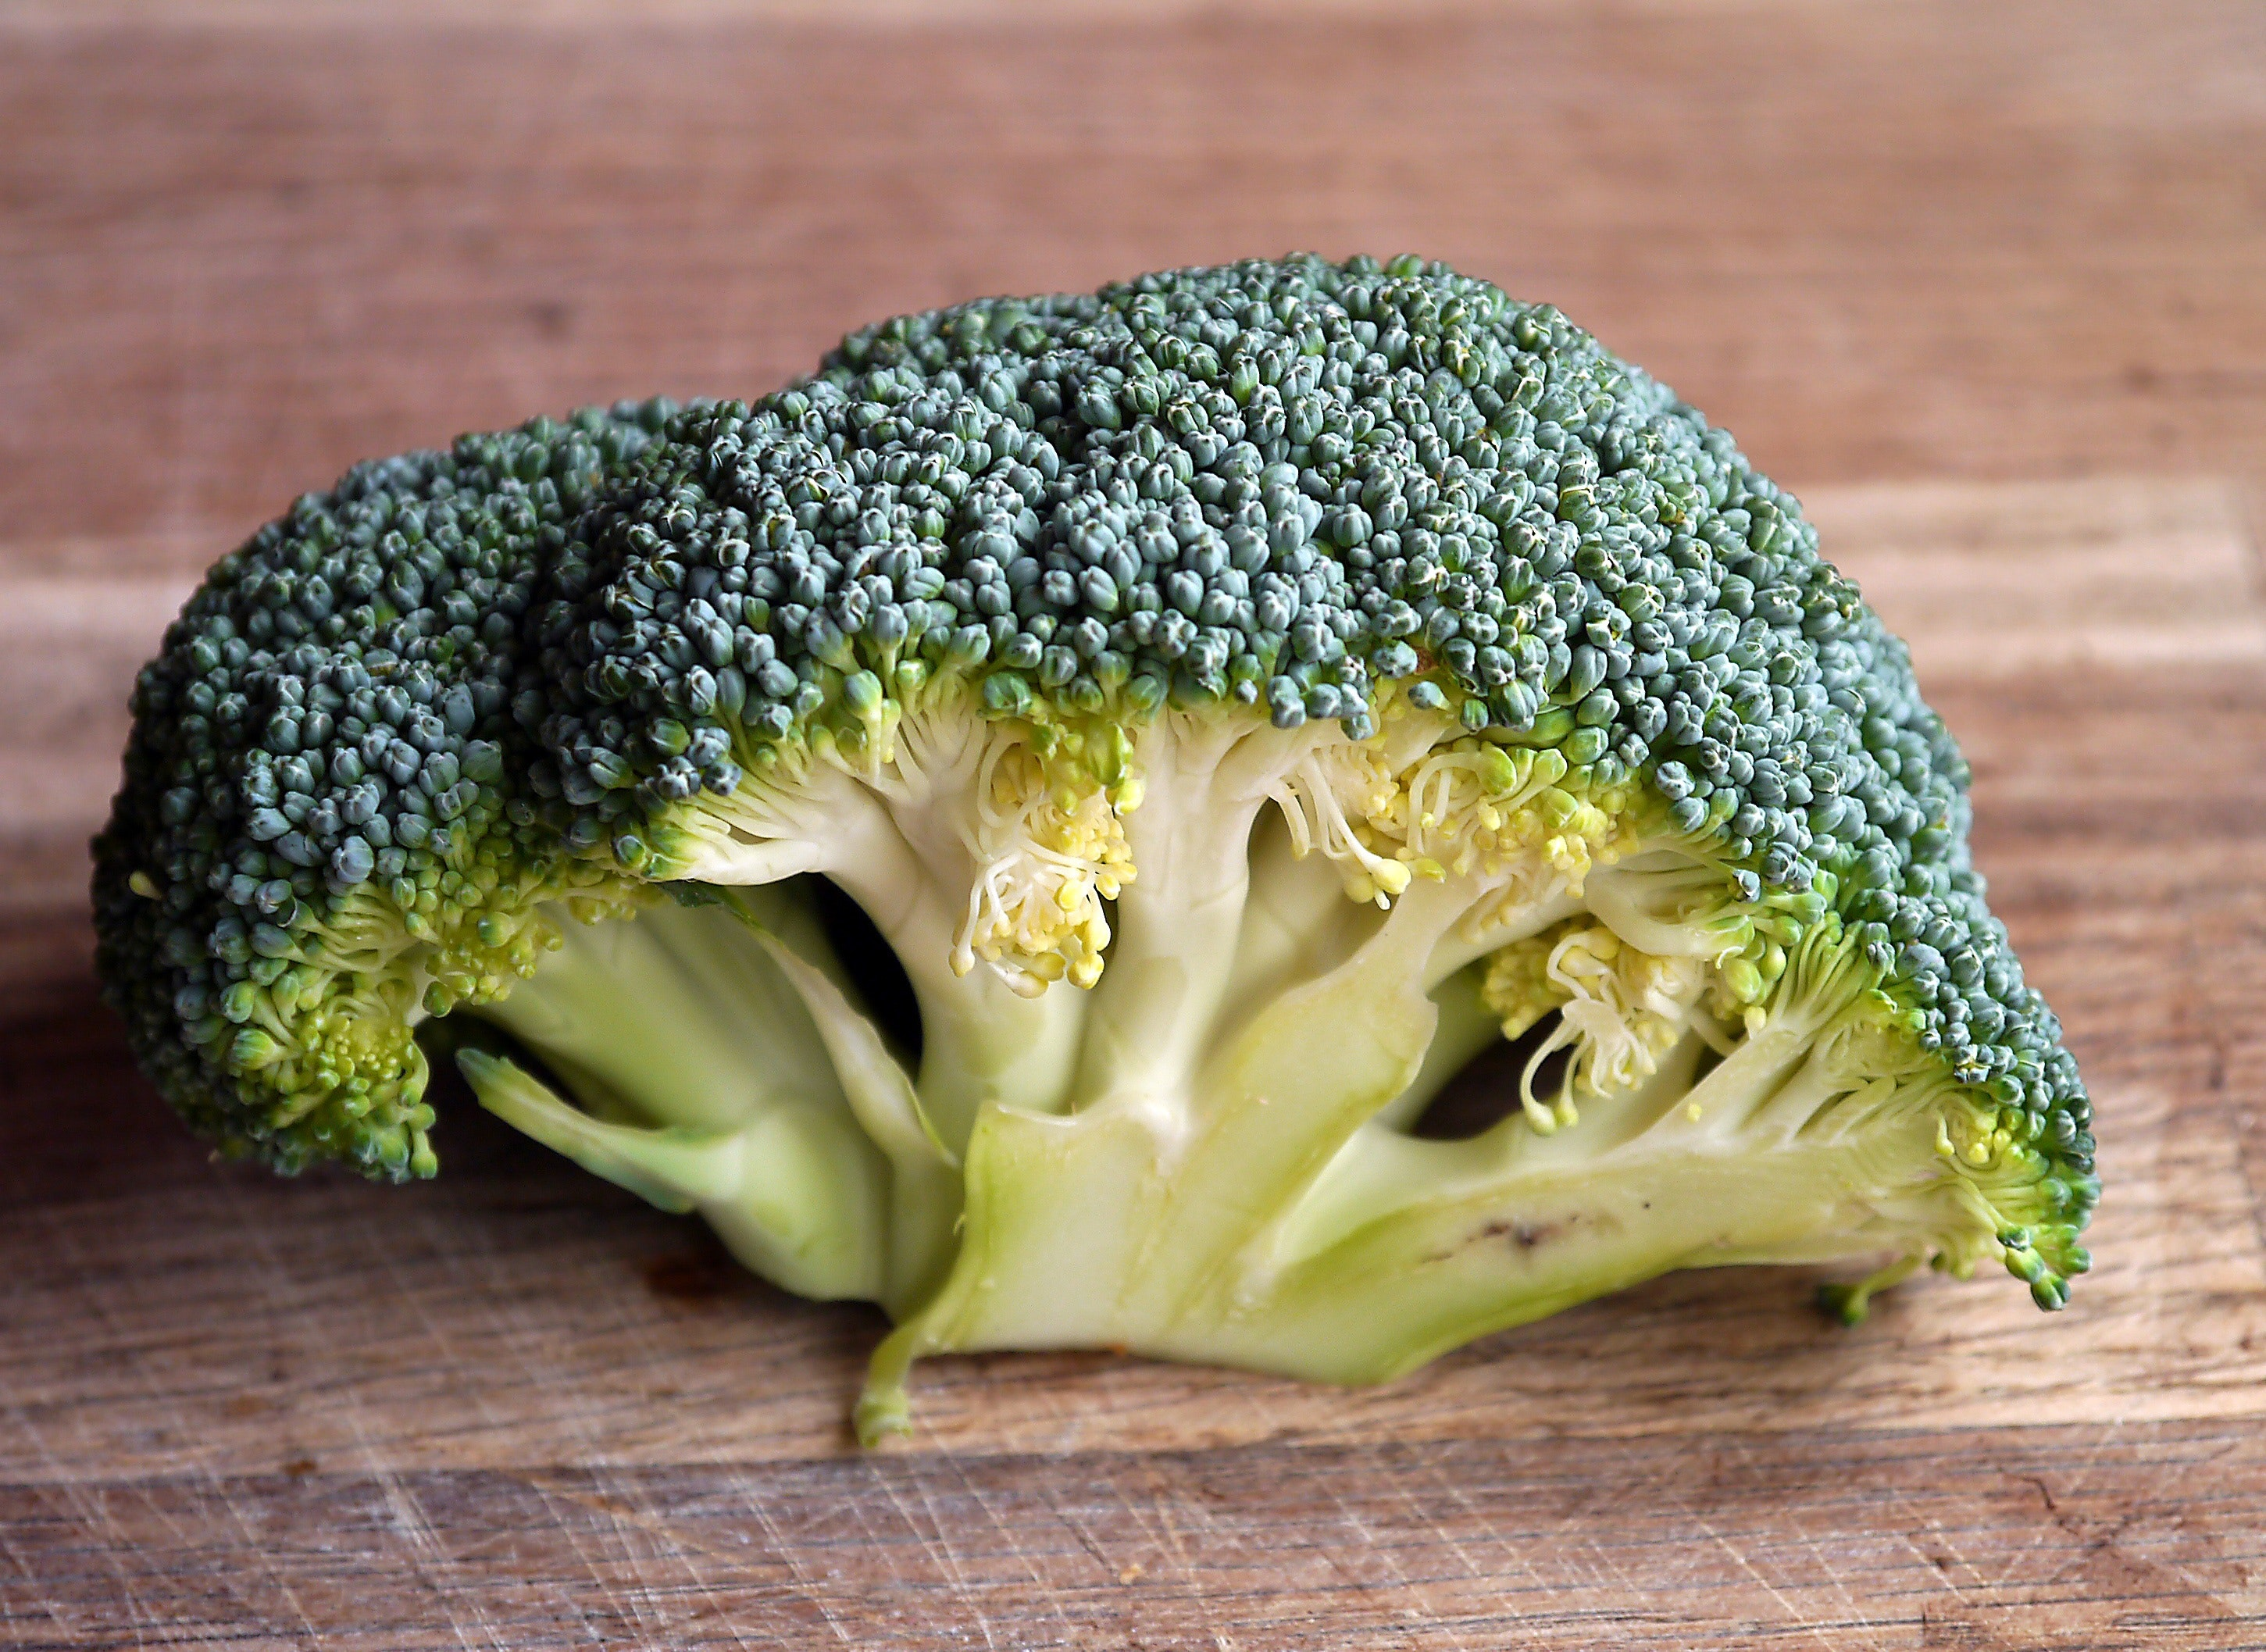 7 Brilliant Ways to Use Leftover Broccoli Stalks